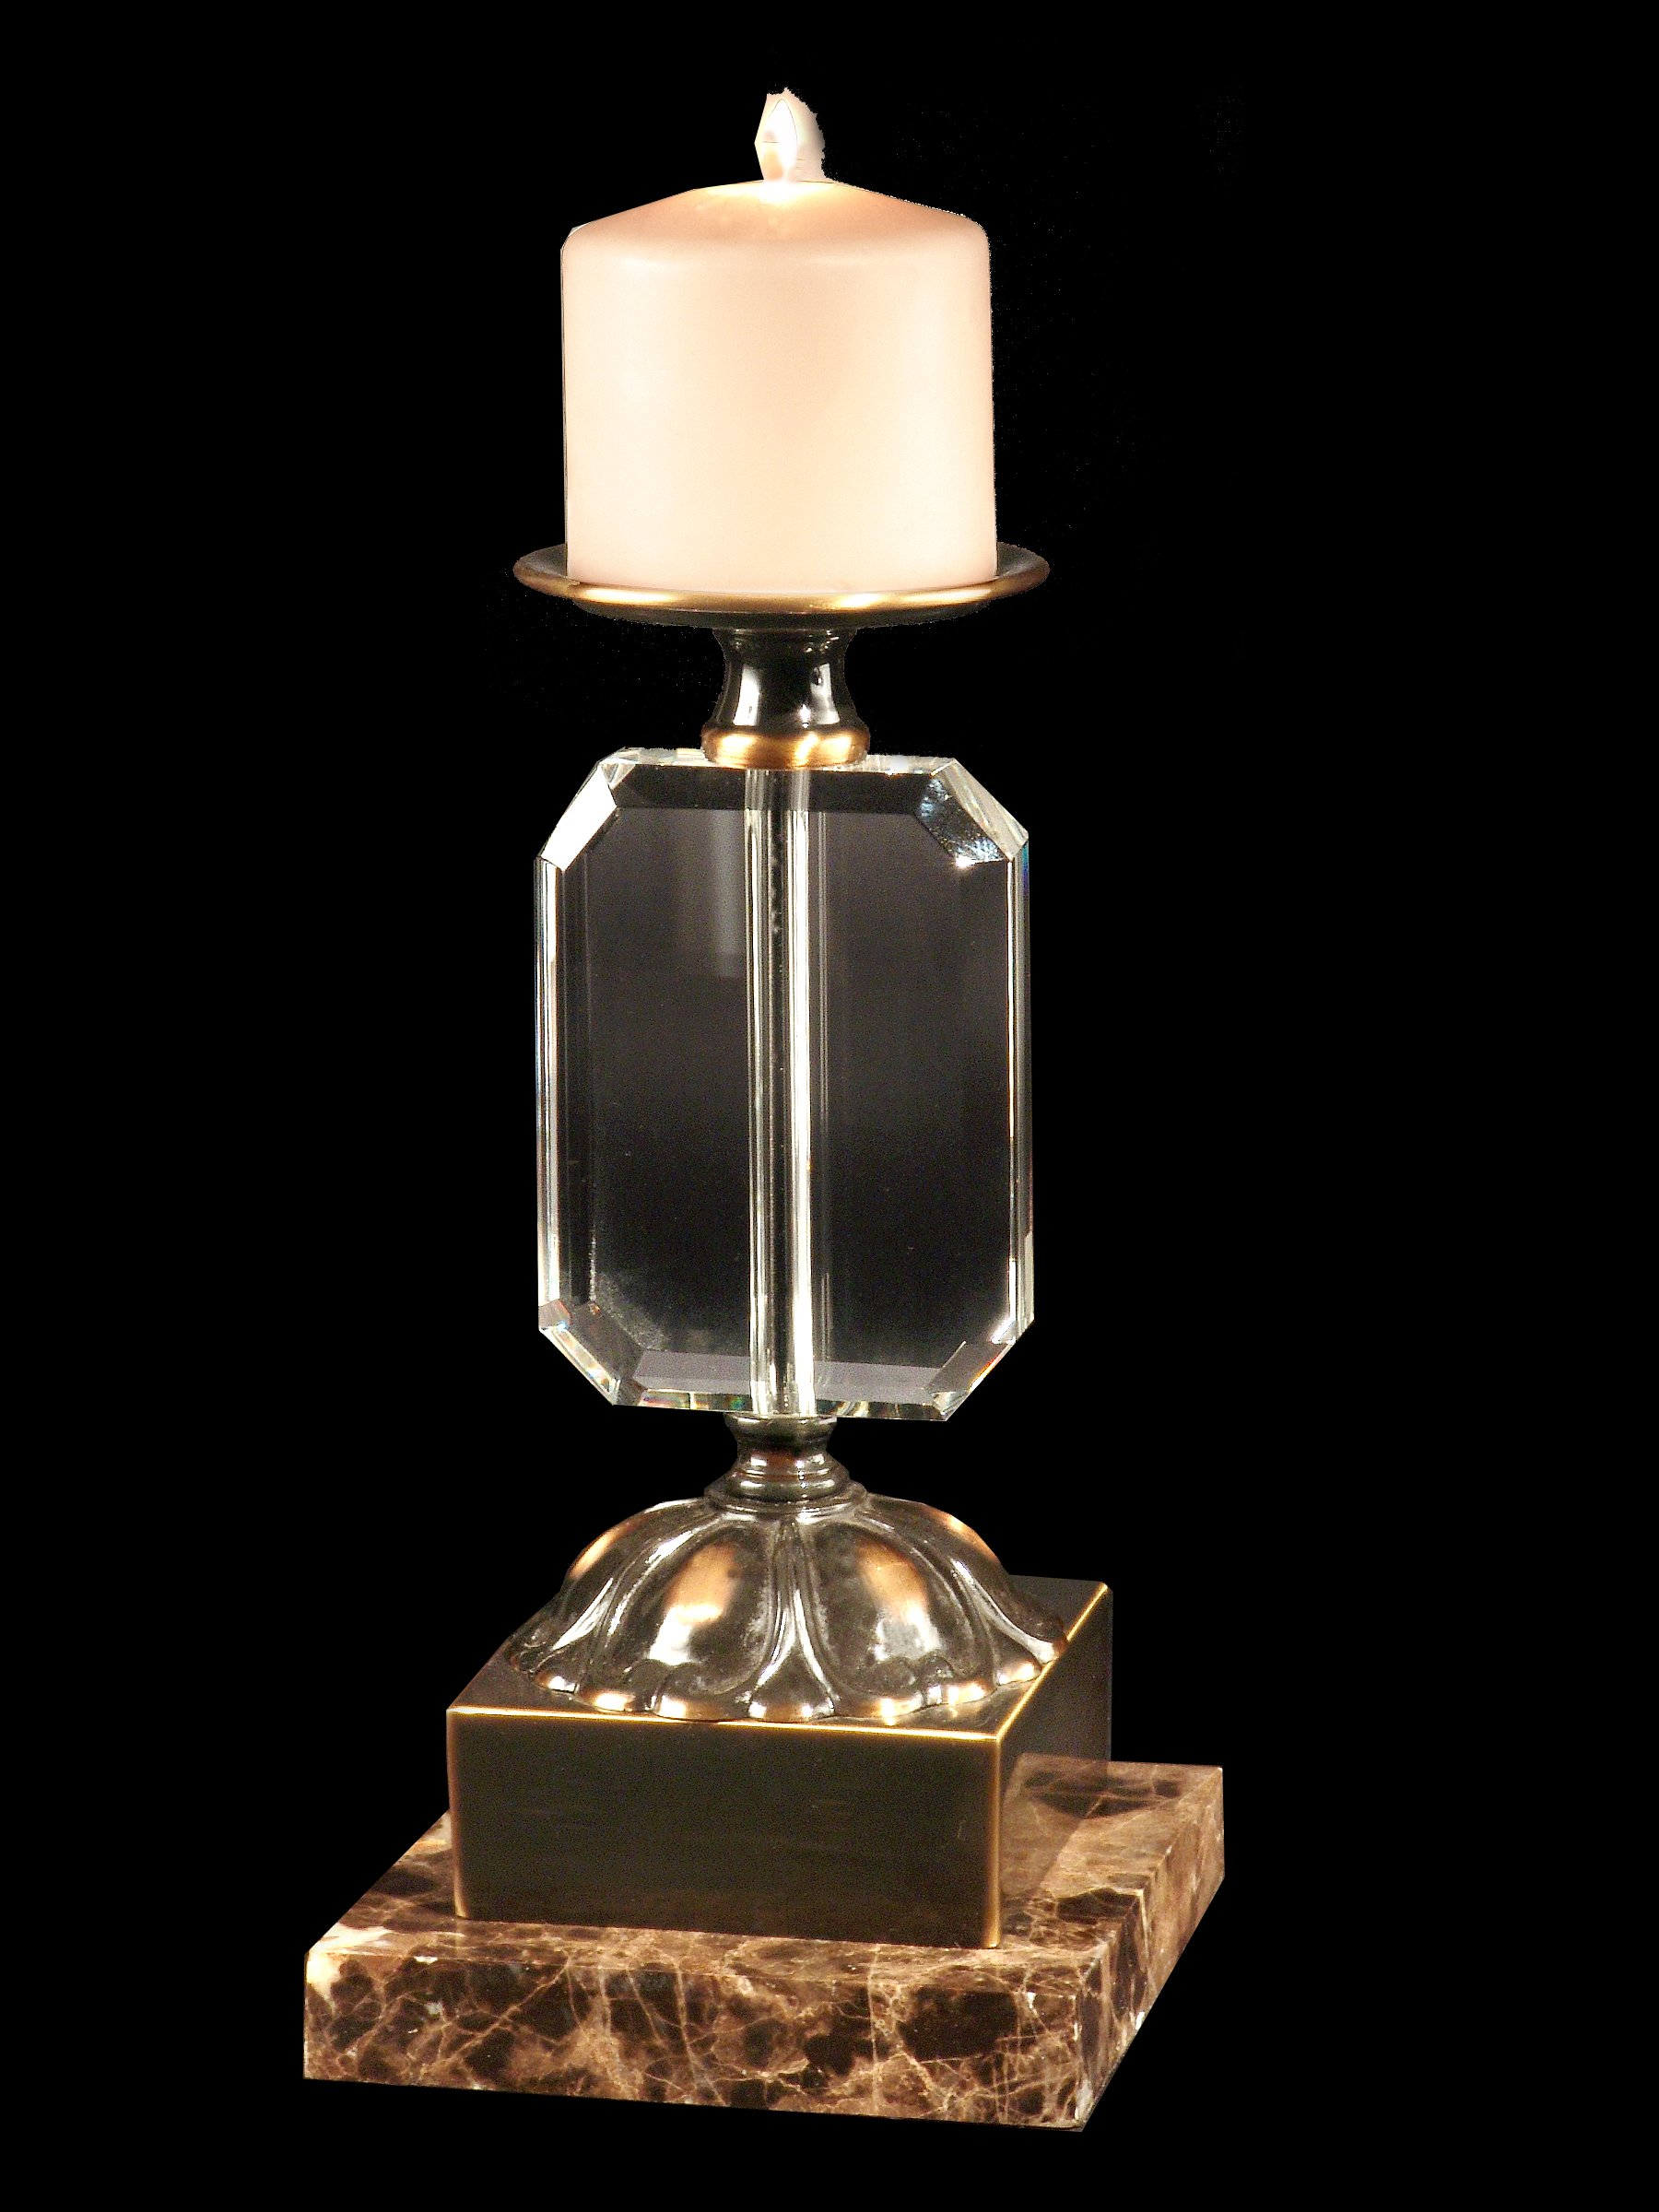 Dale Tiffany GA70067 Florence Decorative Candle Holder with Antique Brass Finish, 3-Inch by 10-1/2-Inch by Dale Tiffany Lamps (Image #1)